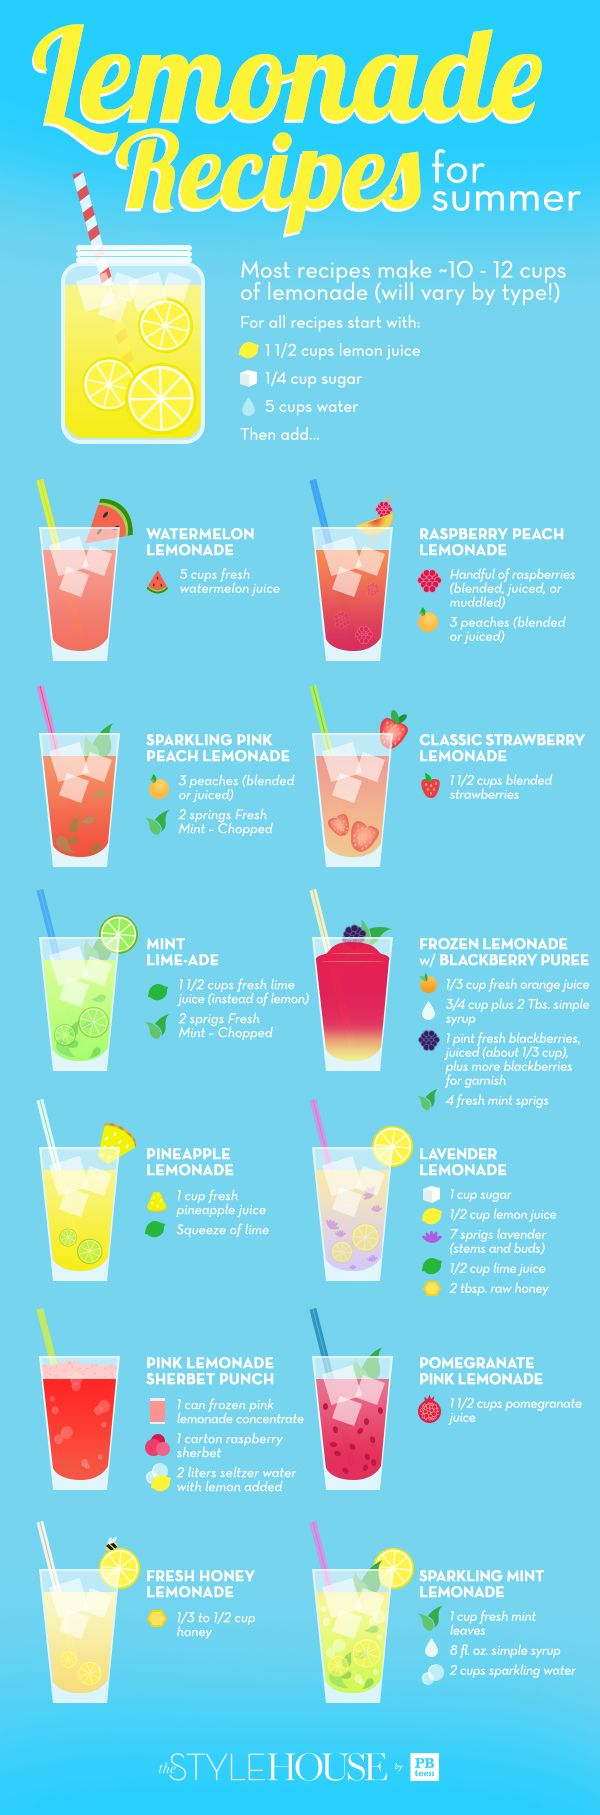 12 Yummy Unique Lemonade Recipes - Coupons and Deals - SavingsMania